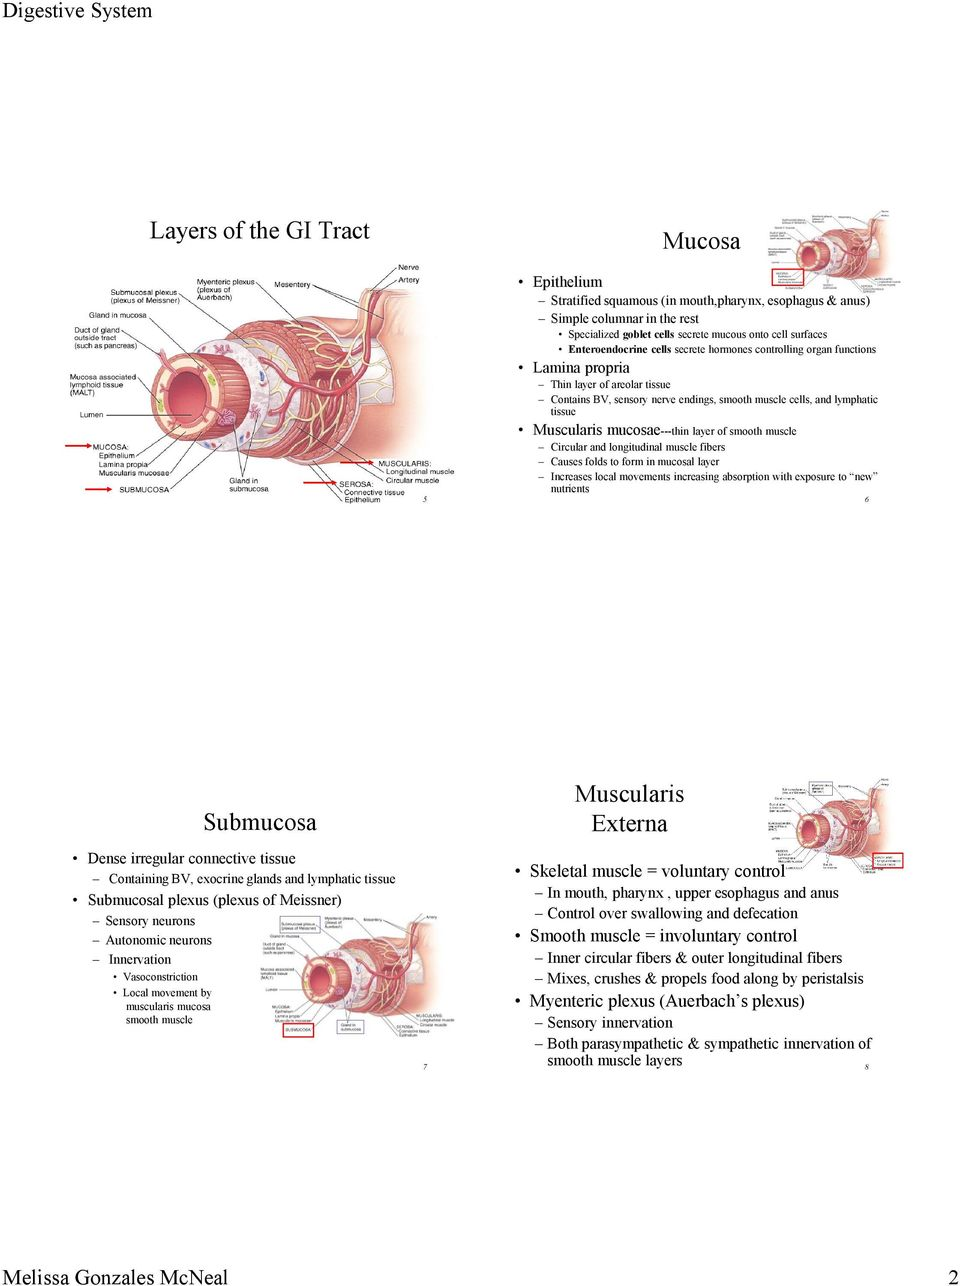 mucosae---thin layer of smooth muscle Circular and longitudinal muscle fibers Causes folds to form in mucosal layer Increases local movements increasing absorption with exposure to new nutrients 6